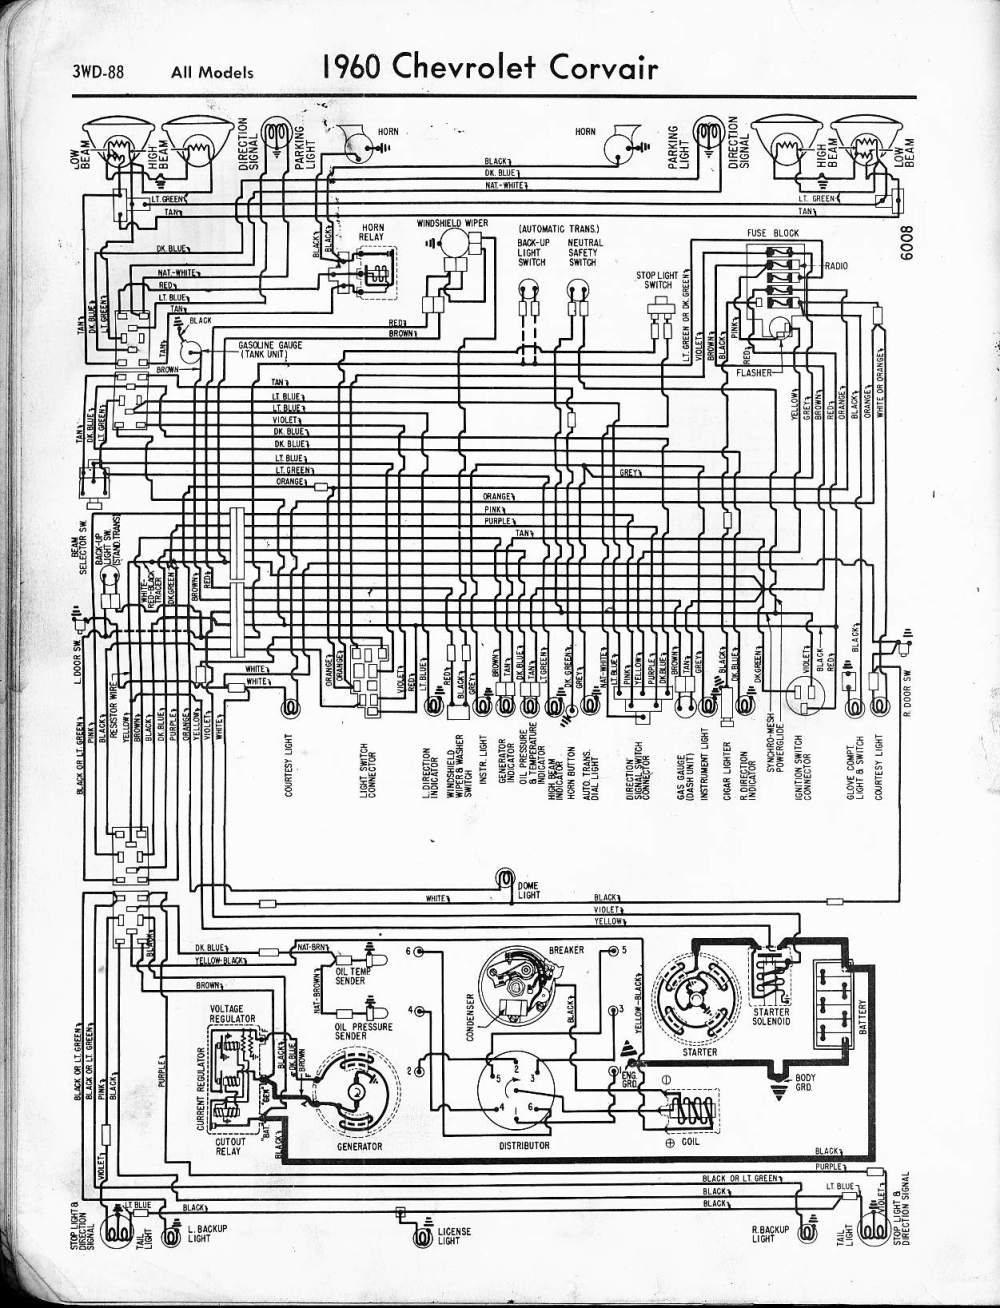 medium resolution of 1960 corvette wiring diagram wiring diagrams img 1963 corvair wiring diagram 1960 corvette wiring diagram